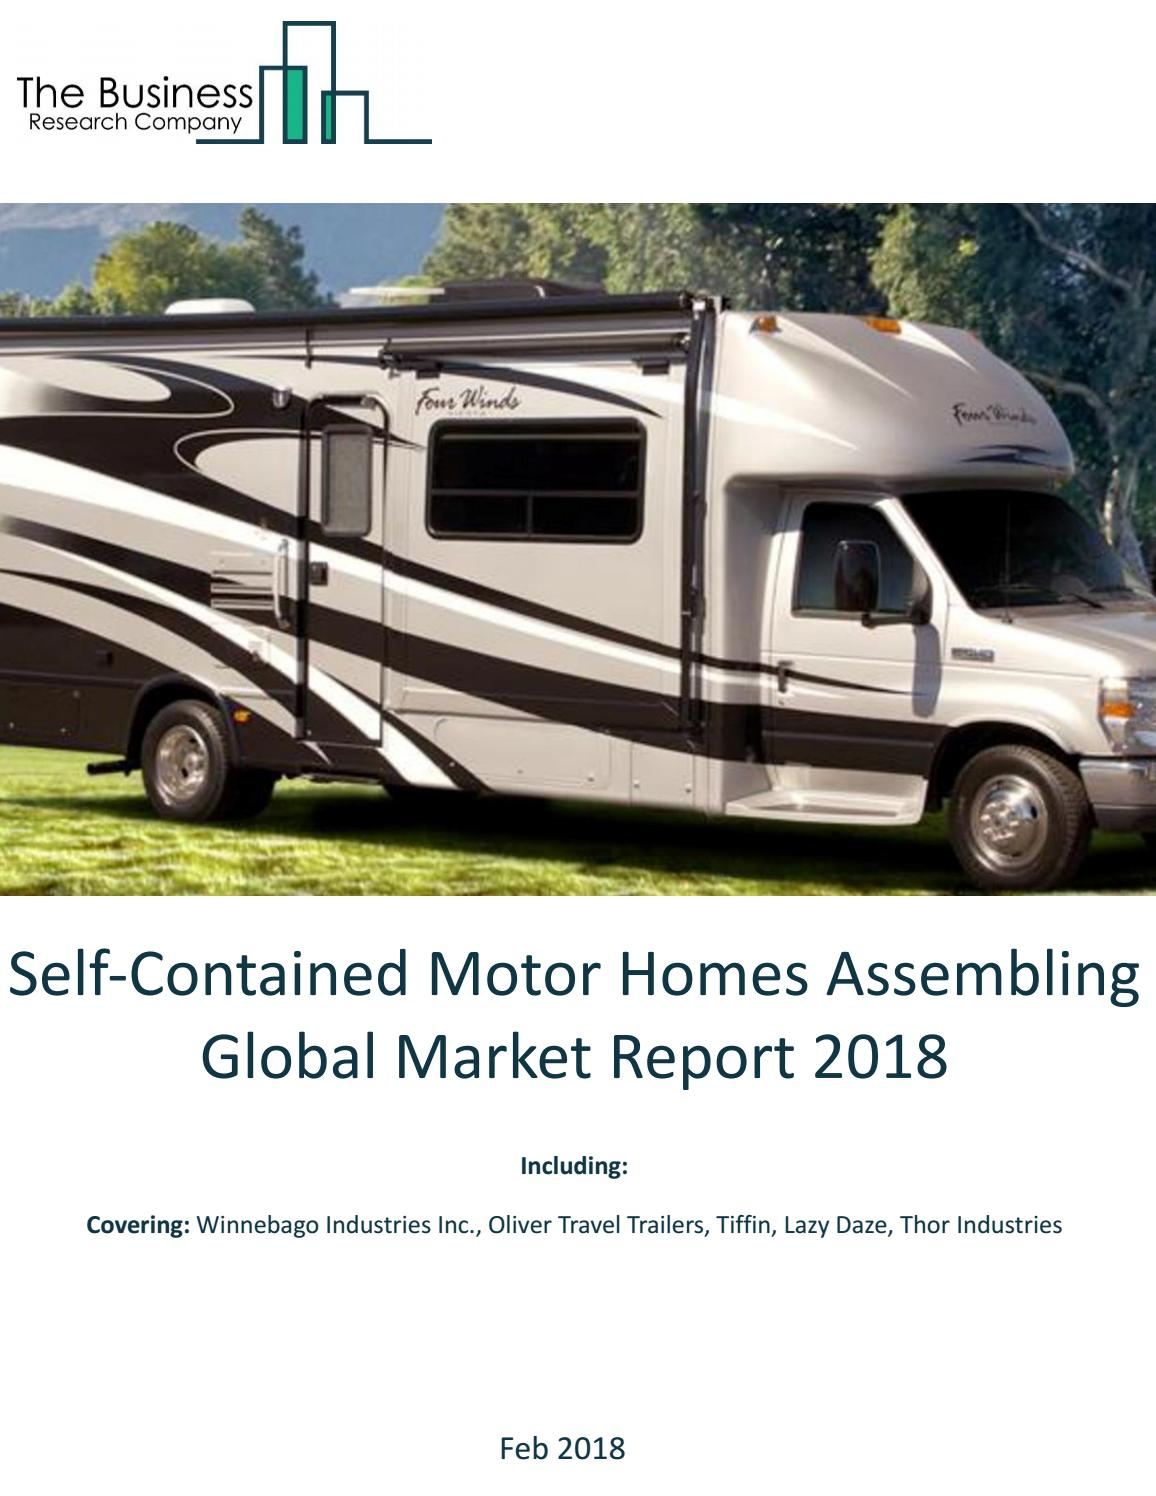 Self-Contained Motor Homes Assembling Global Market Report 2018 by